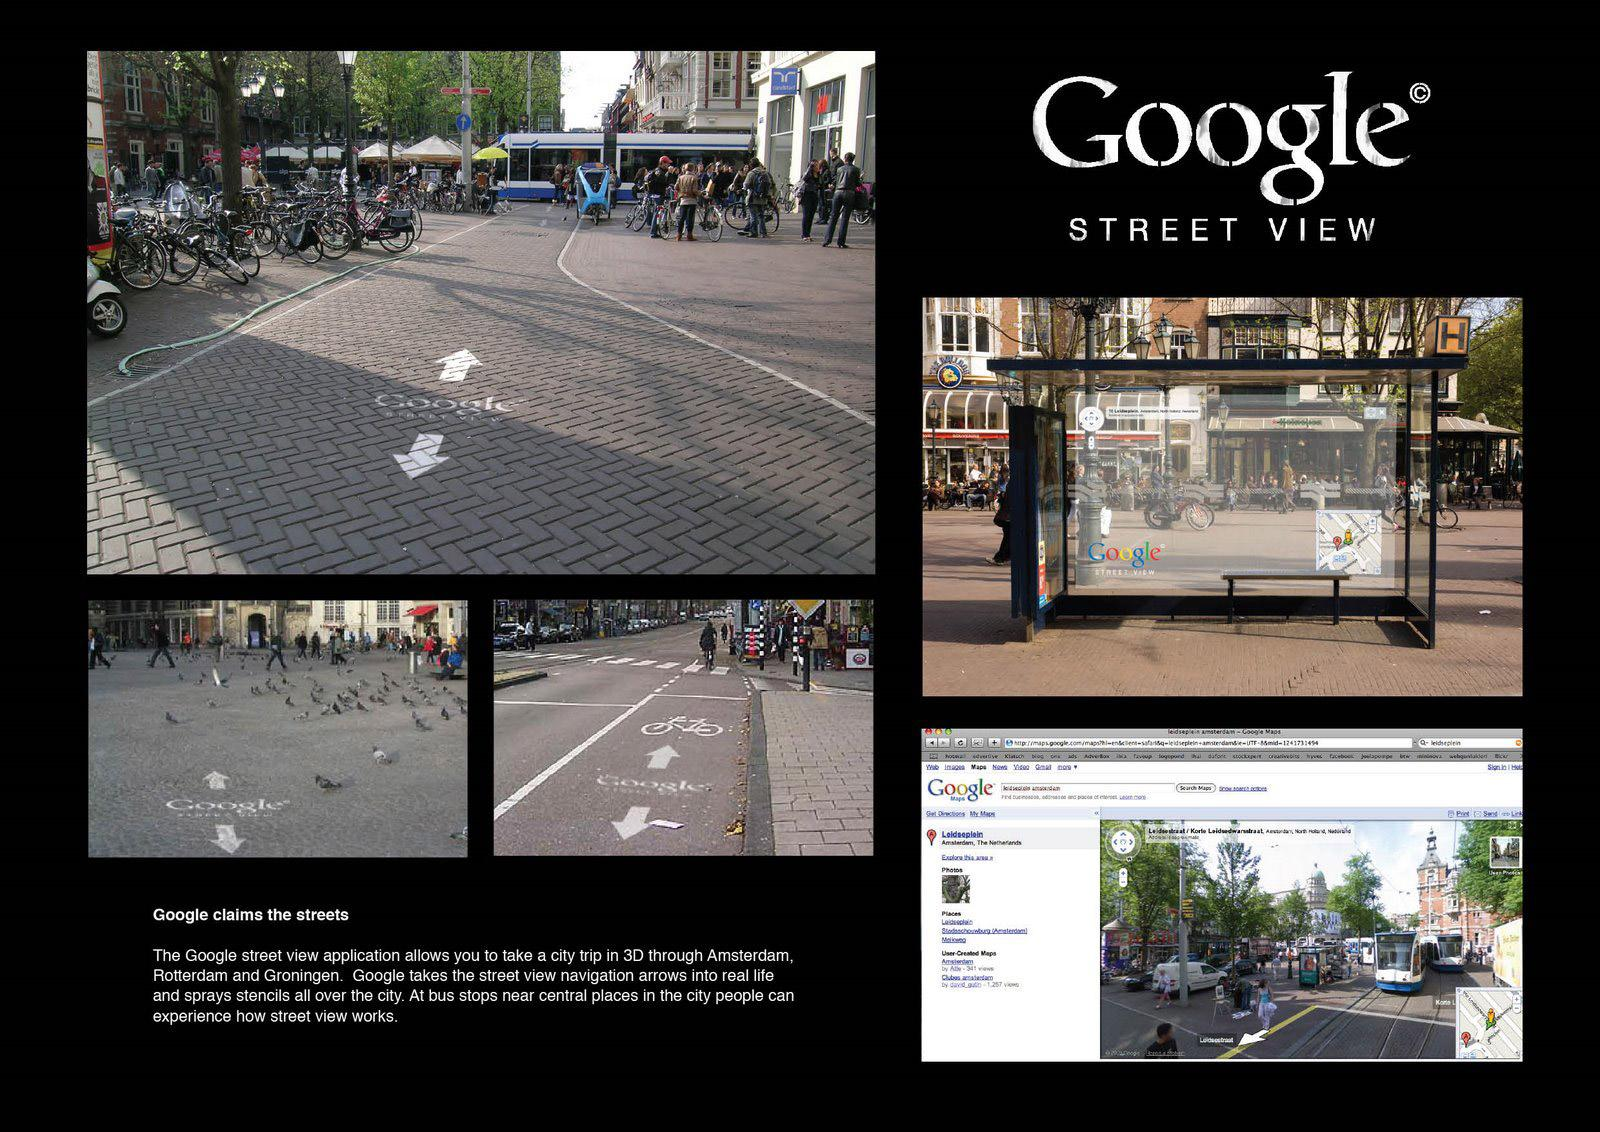 Google:  Google claims the streets